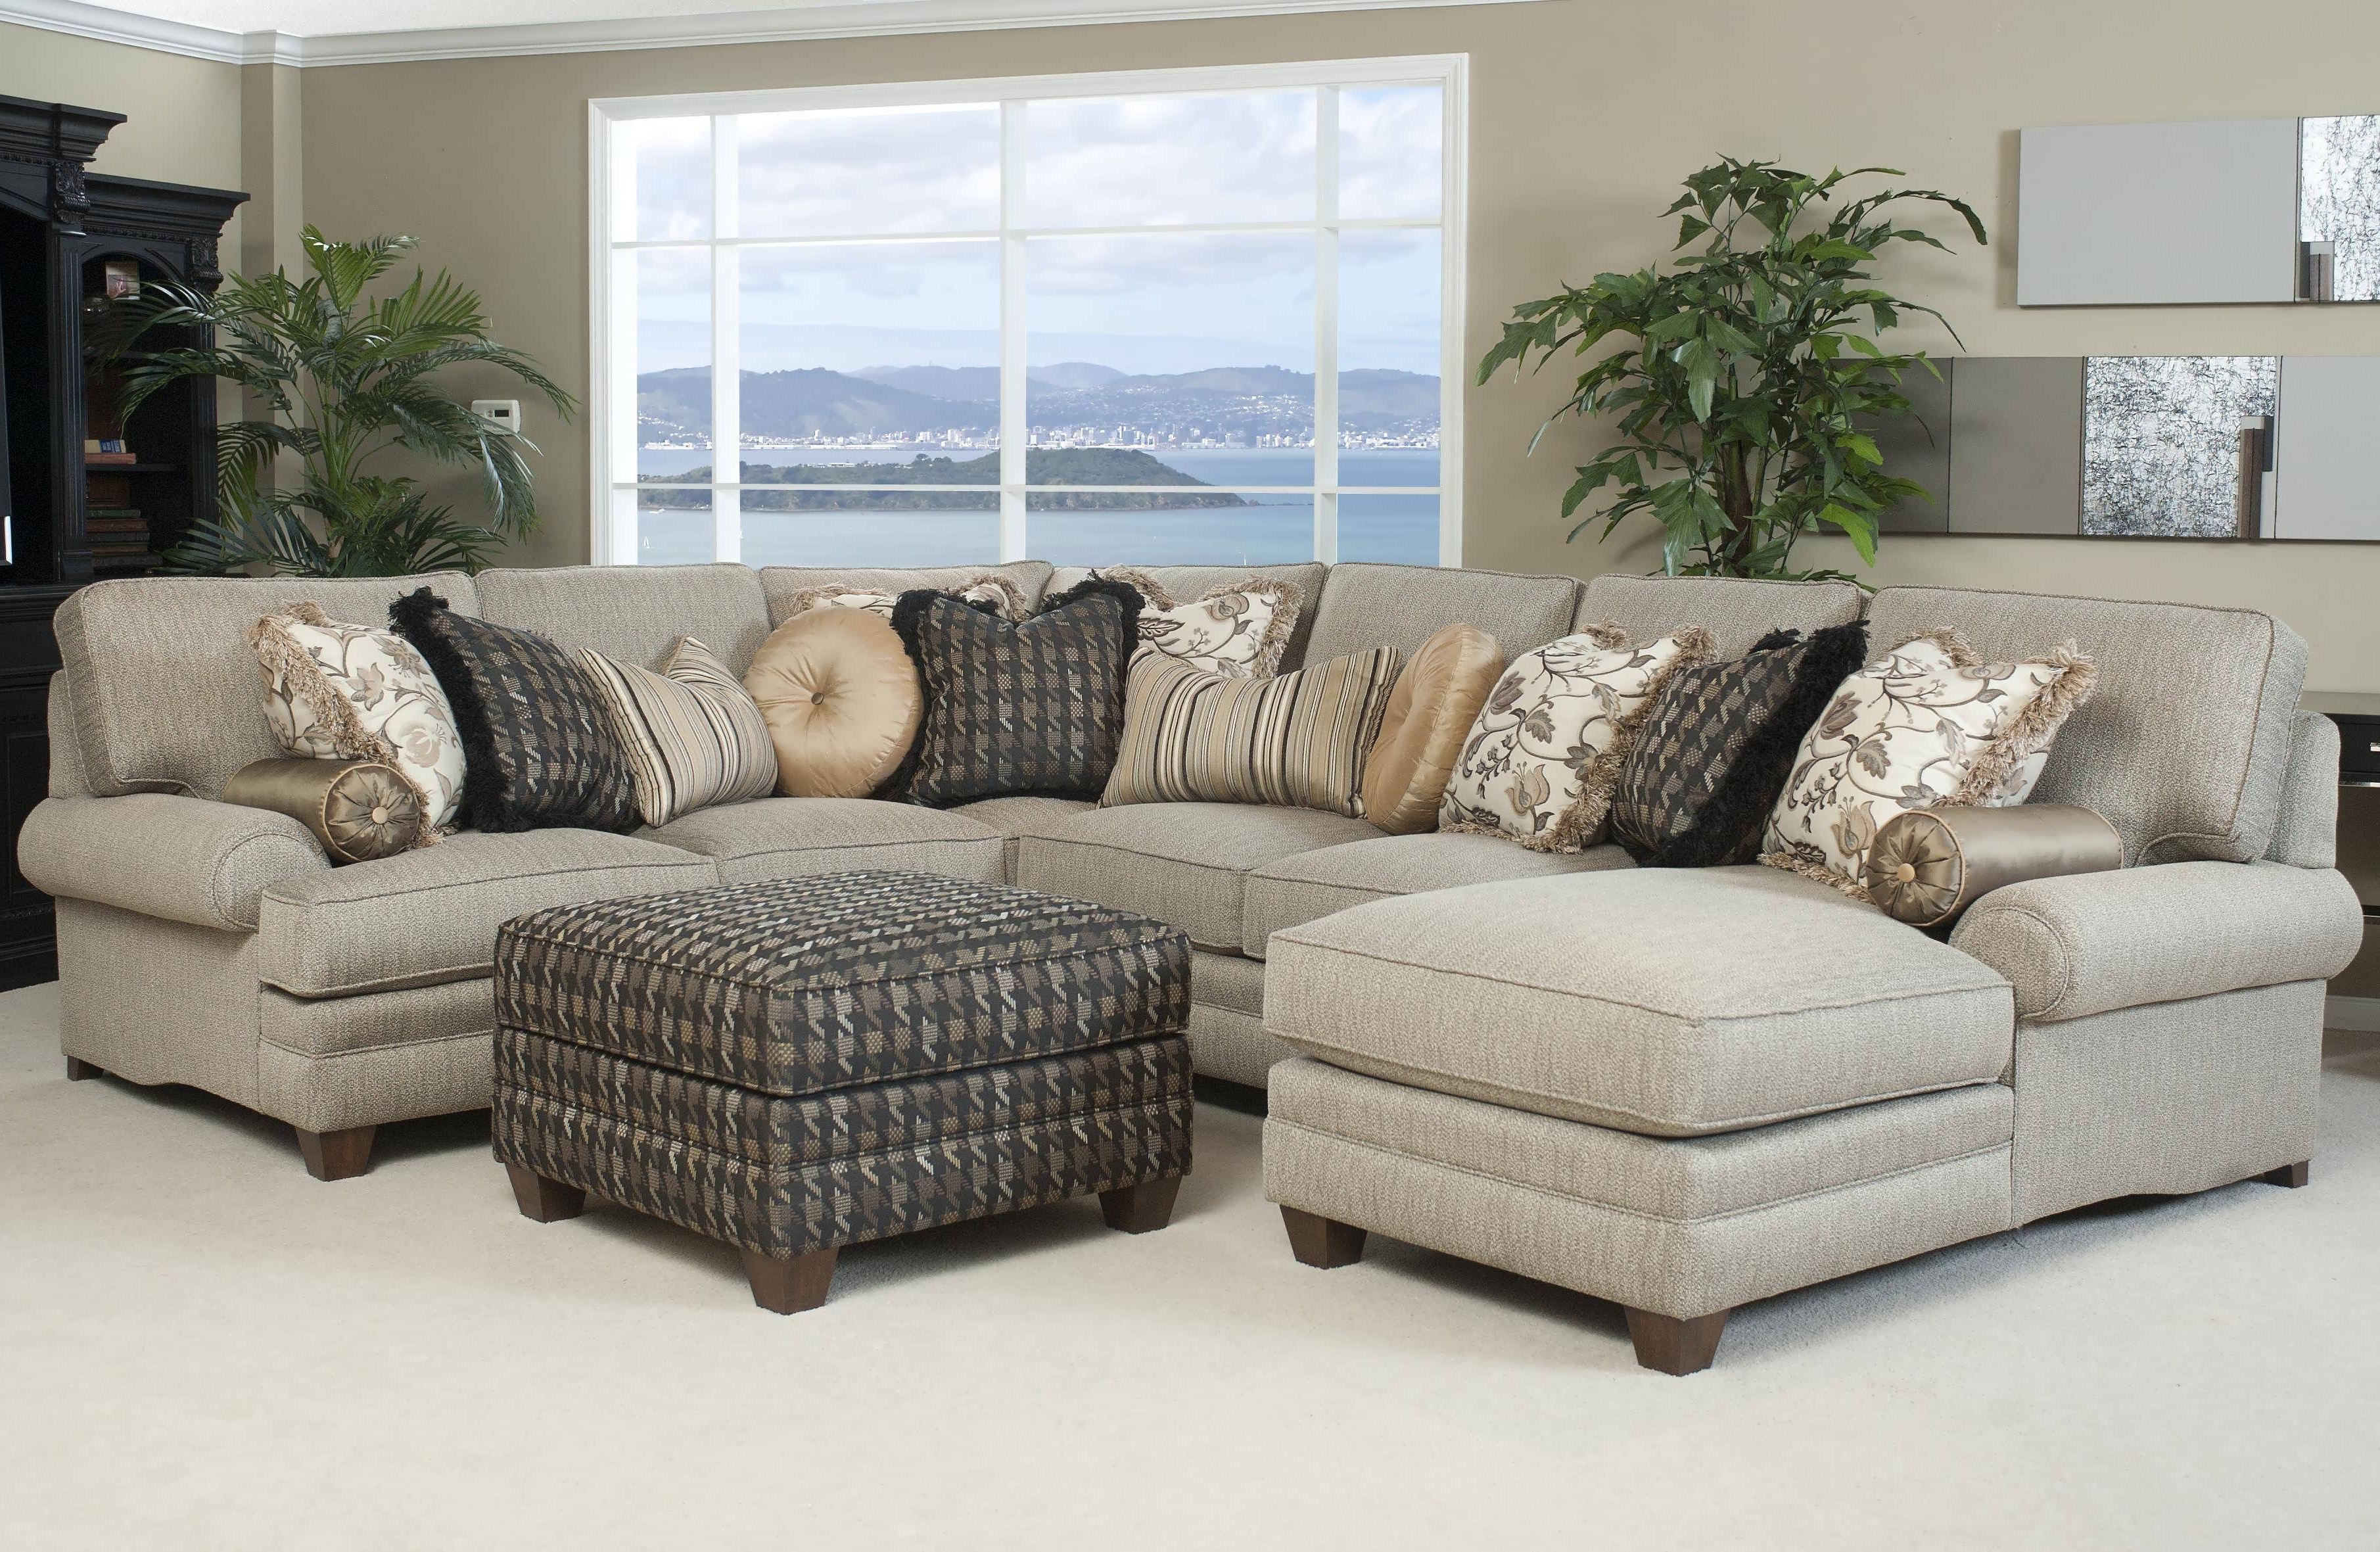 Chaise Lounge Sectional Sofas With Regard To Most Current Sofa : Couches L Sofa Microfiber Sectional White Sectional Small (View 14 of 15)